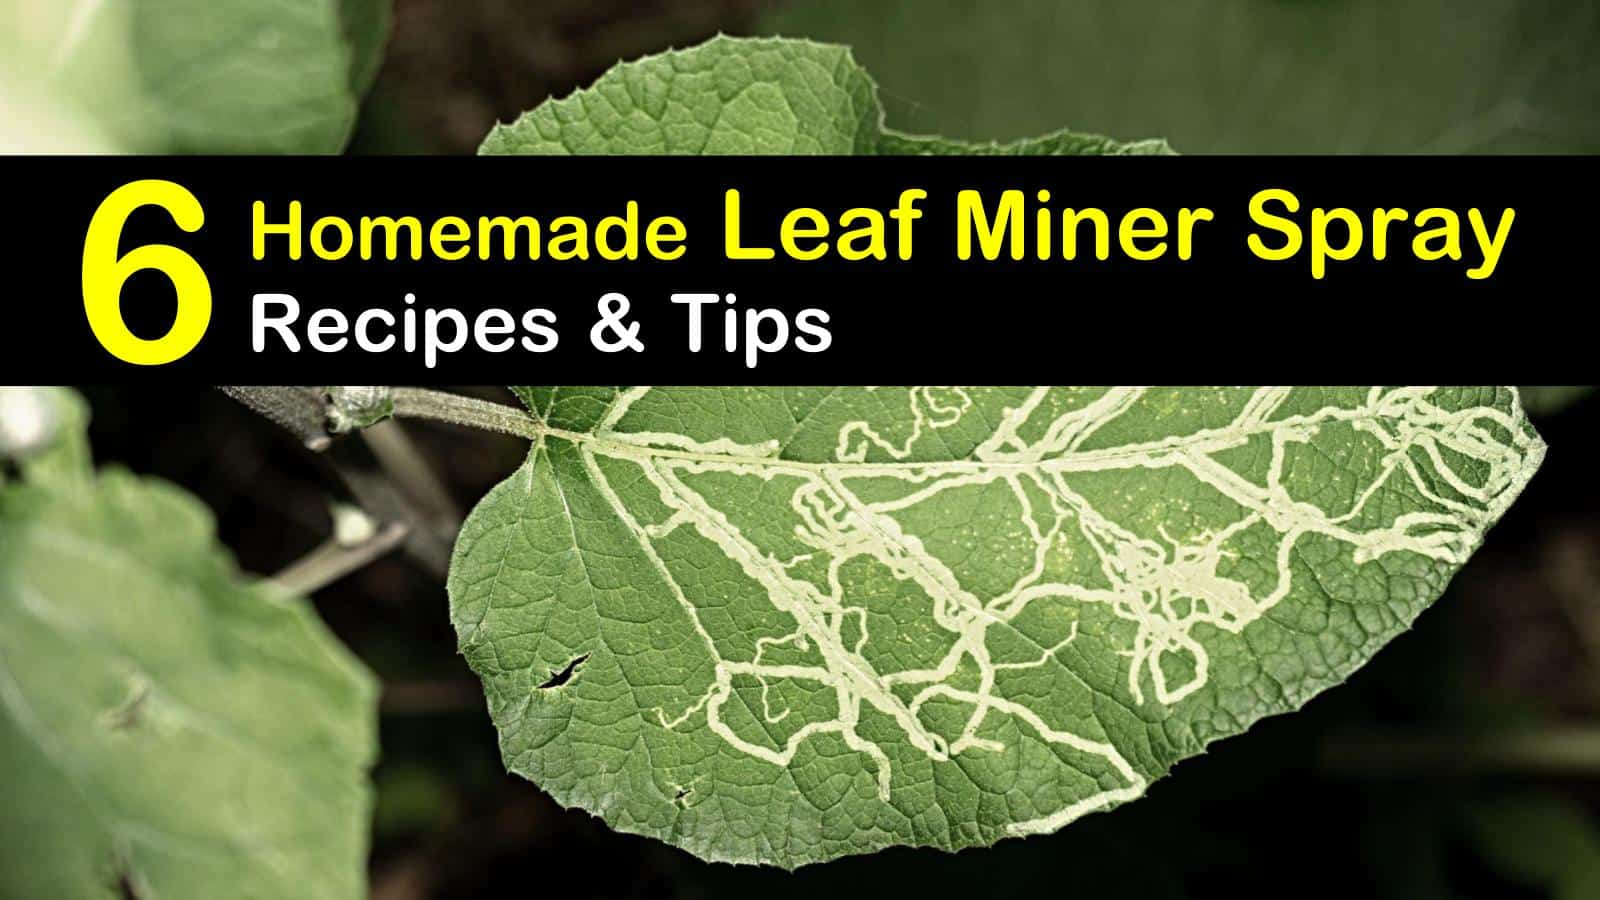 homemade leaf miner spray titleimg1